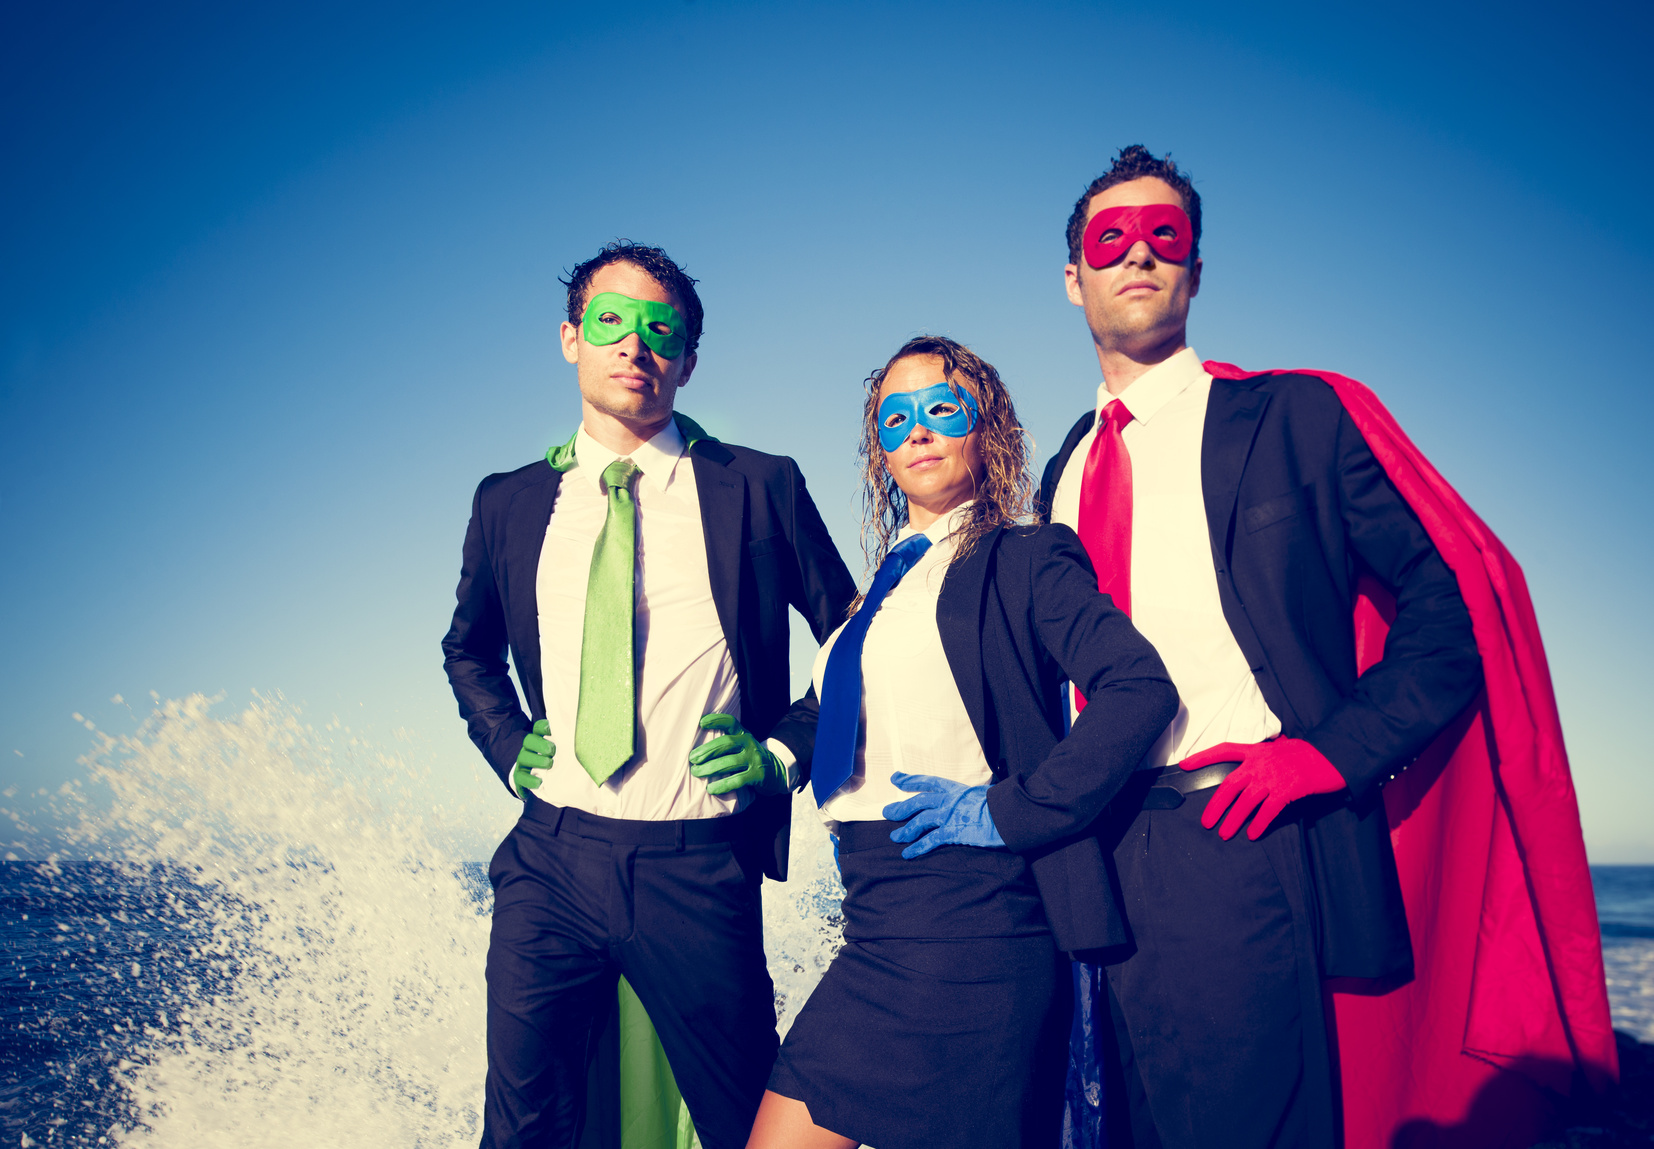 Business superheroes facing storm.